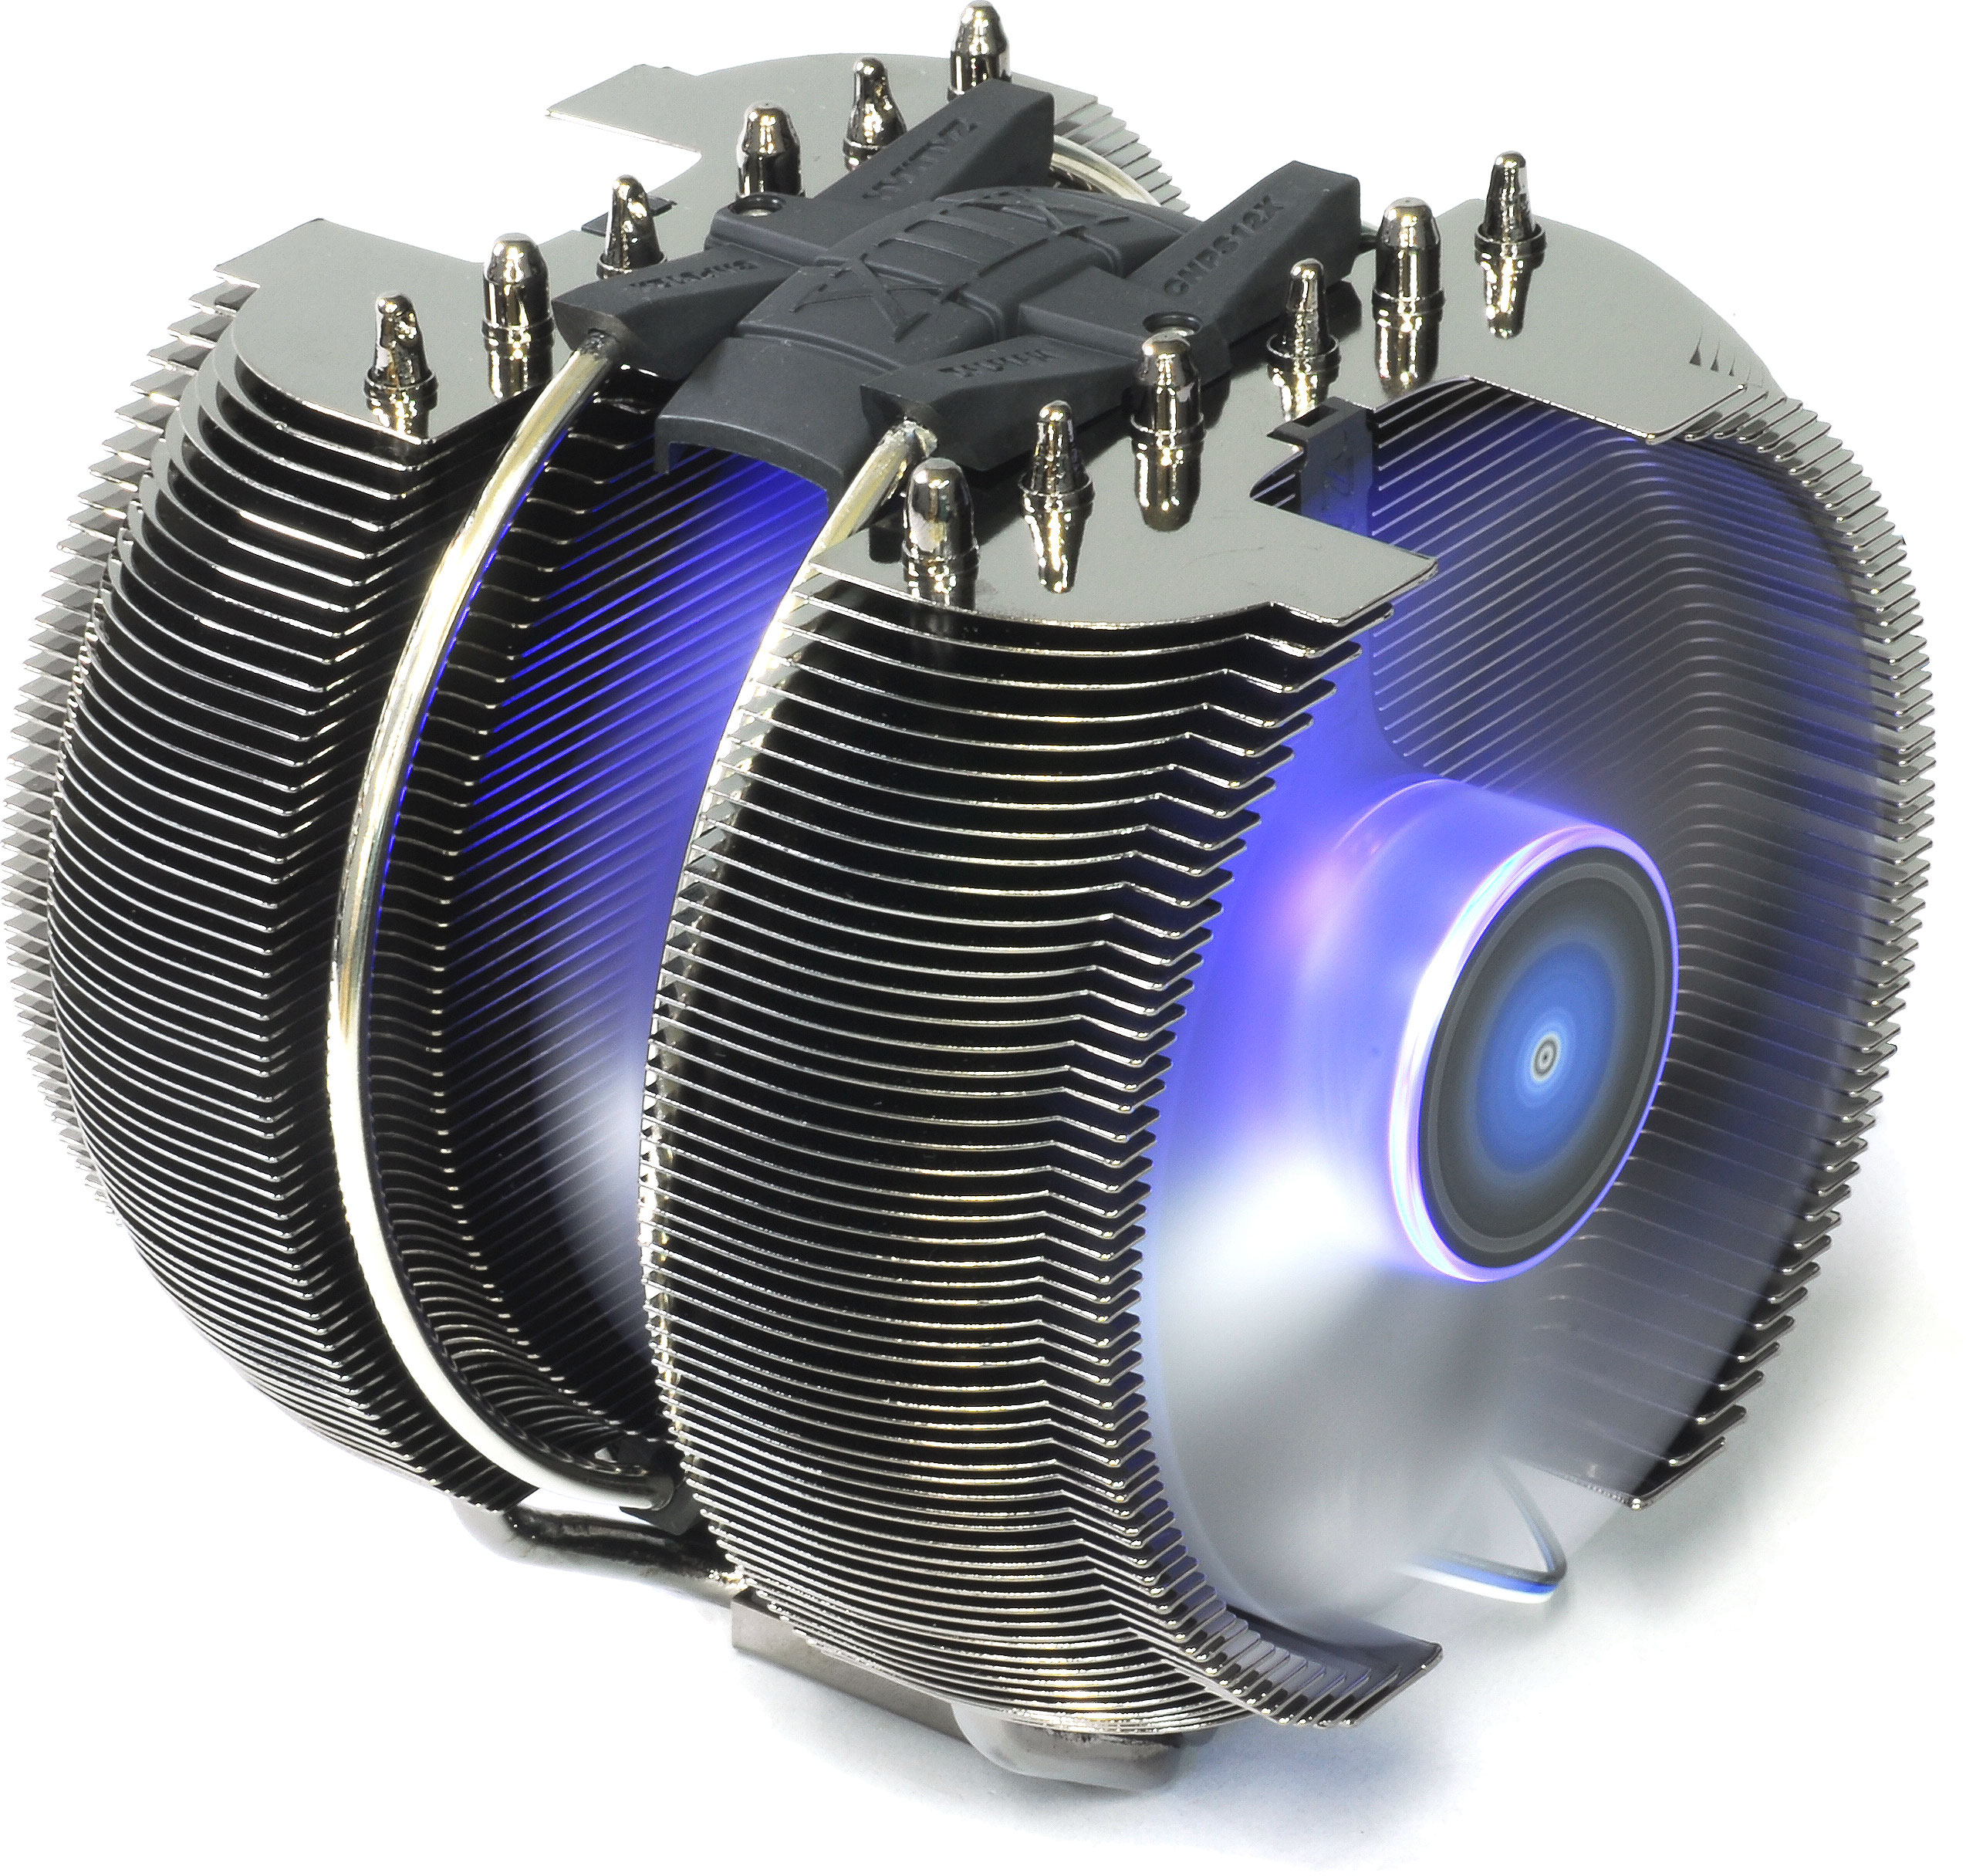 Processor Cooling Fan : Cnps ultimate performance triple fan cpu cooler